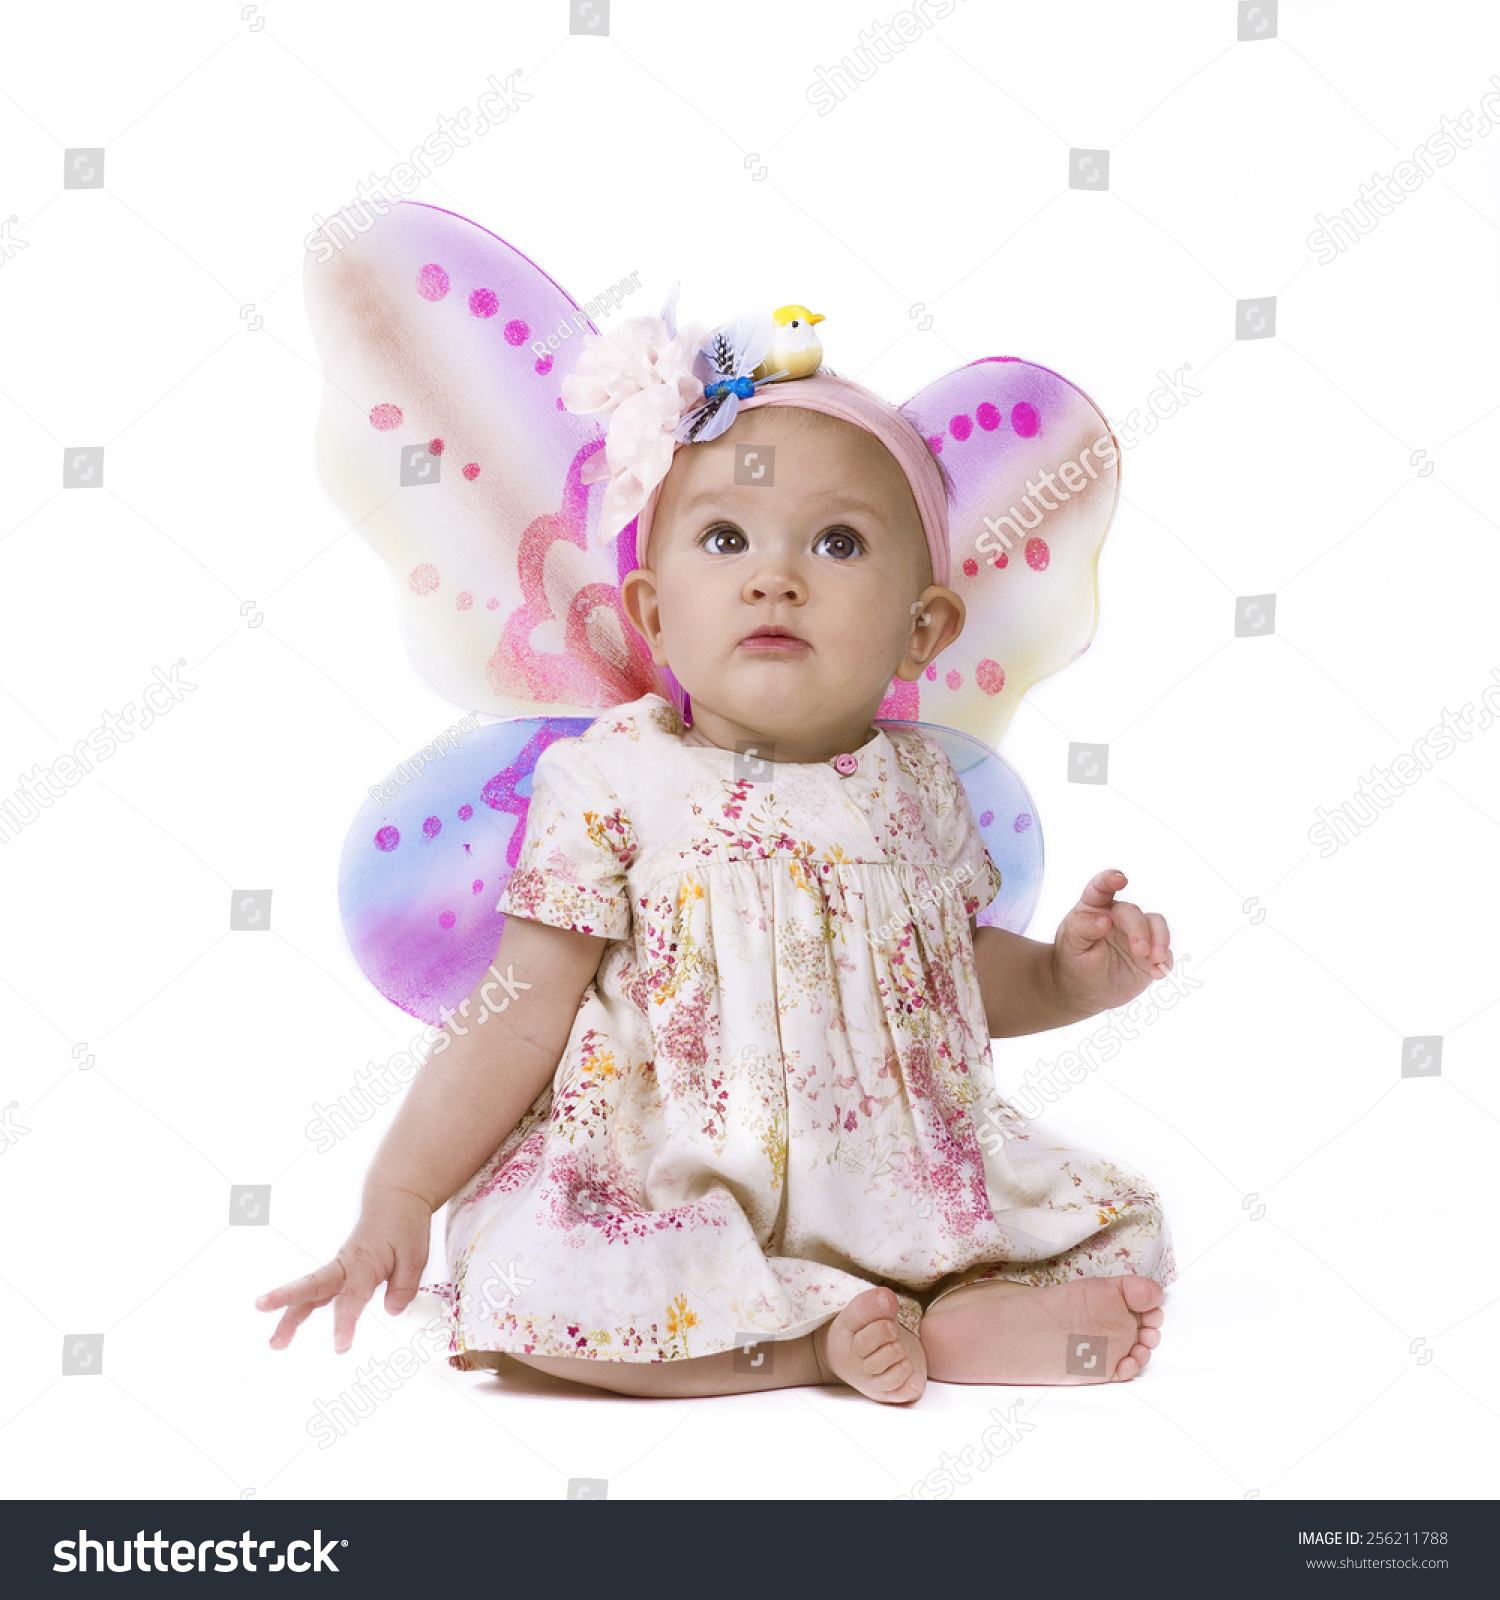 Isolated of a cute baby girl with butterfly wings looking up